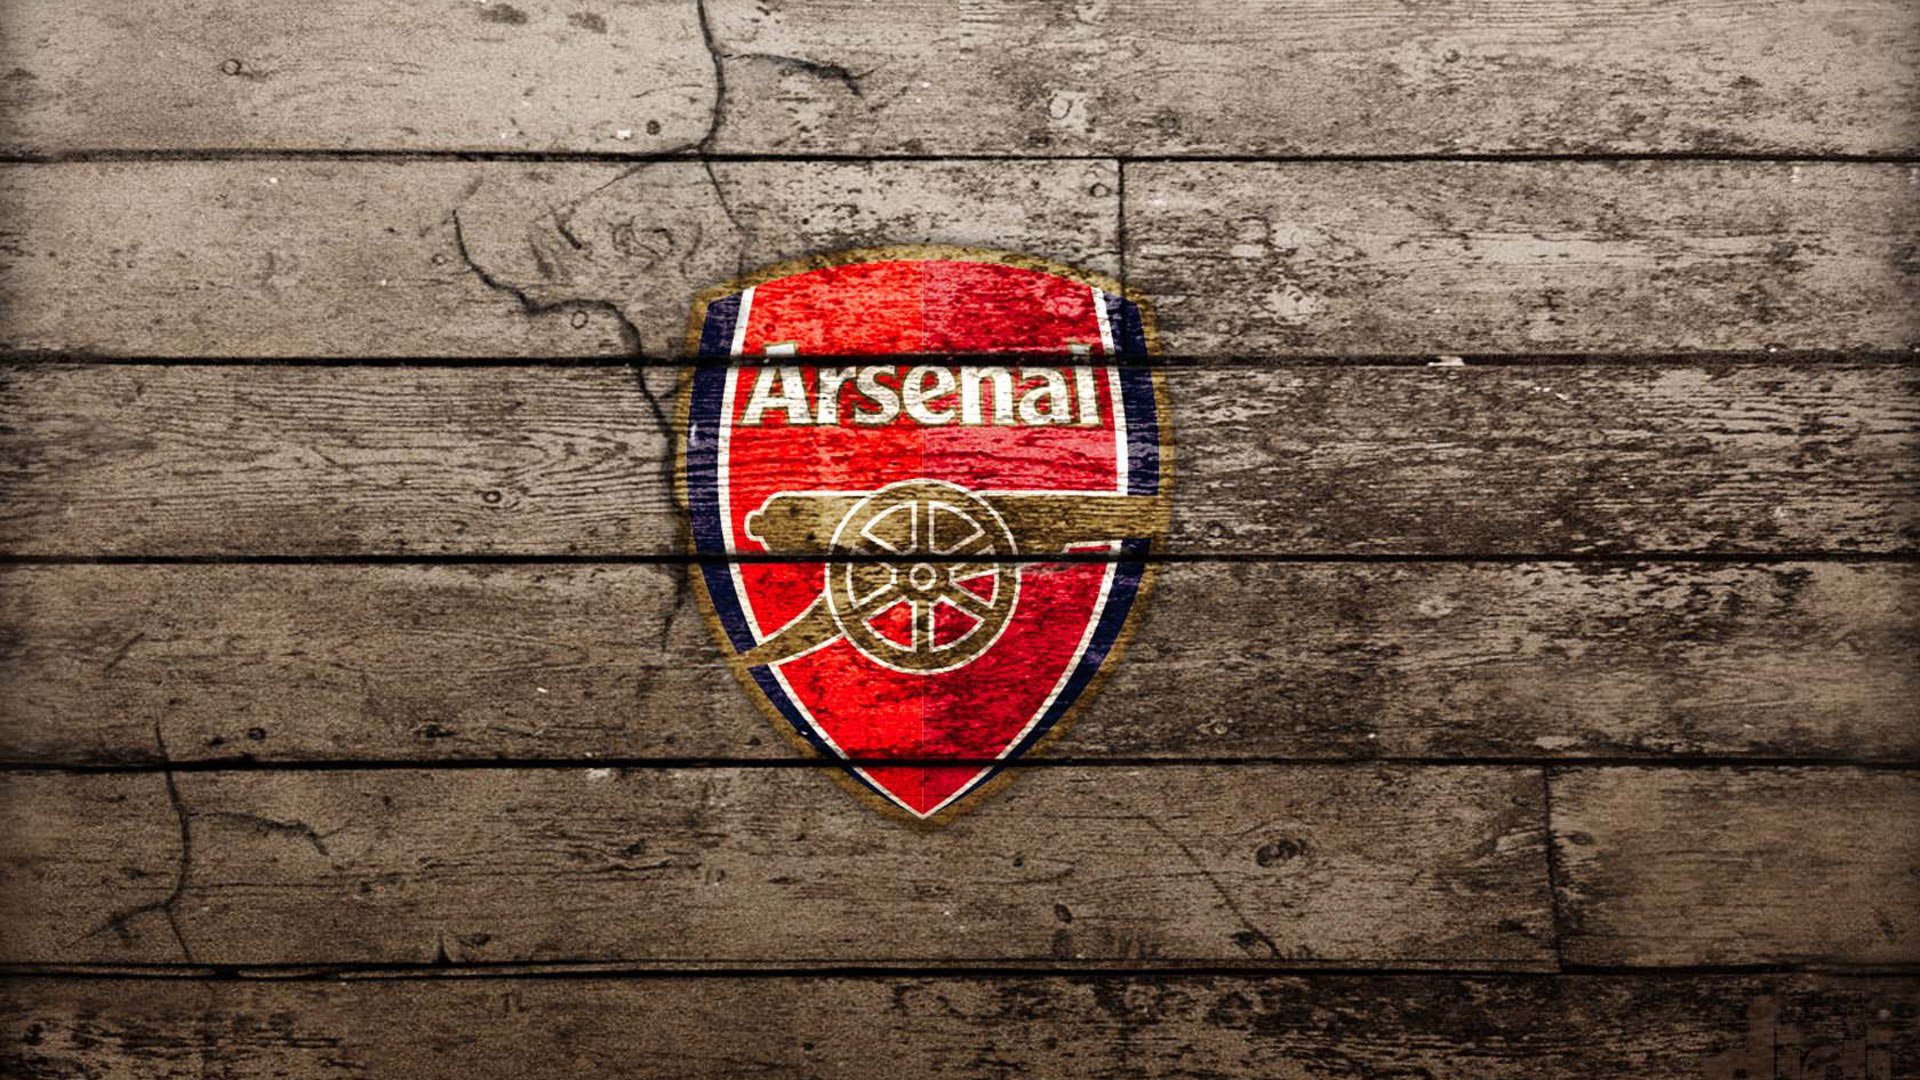 Download 1080p Arsenal F.C. PC wallpaper ID:444791 for free